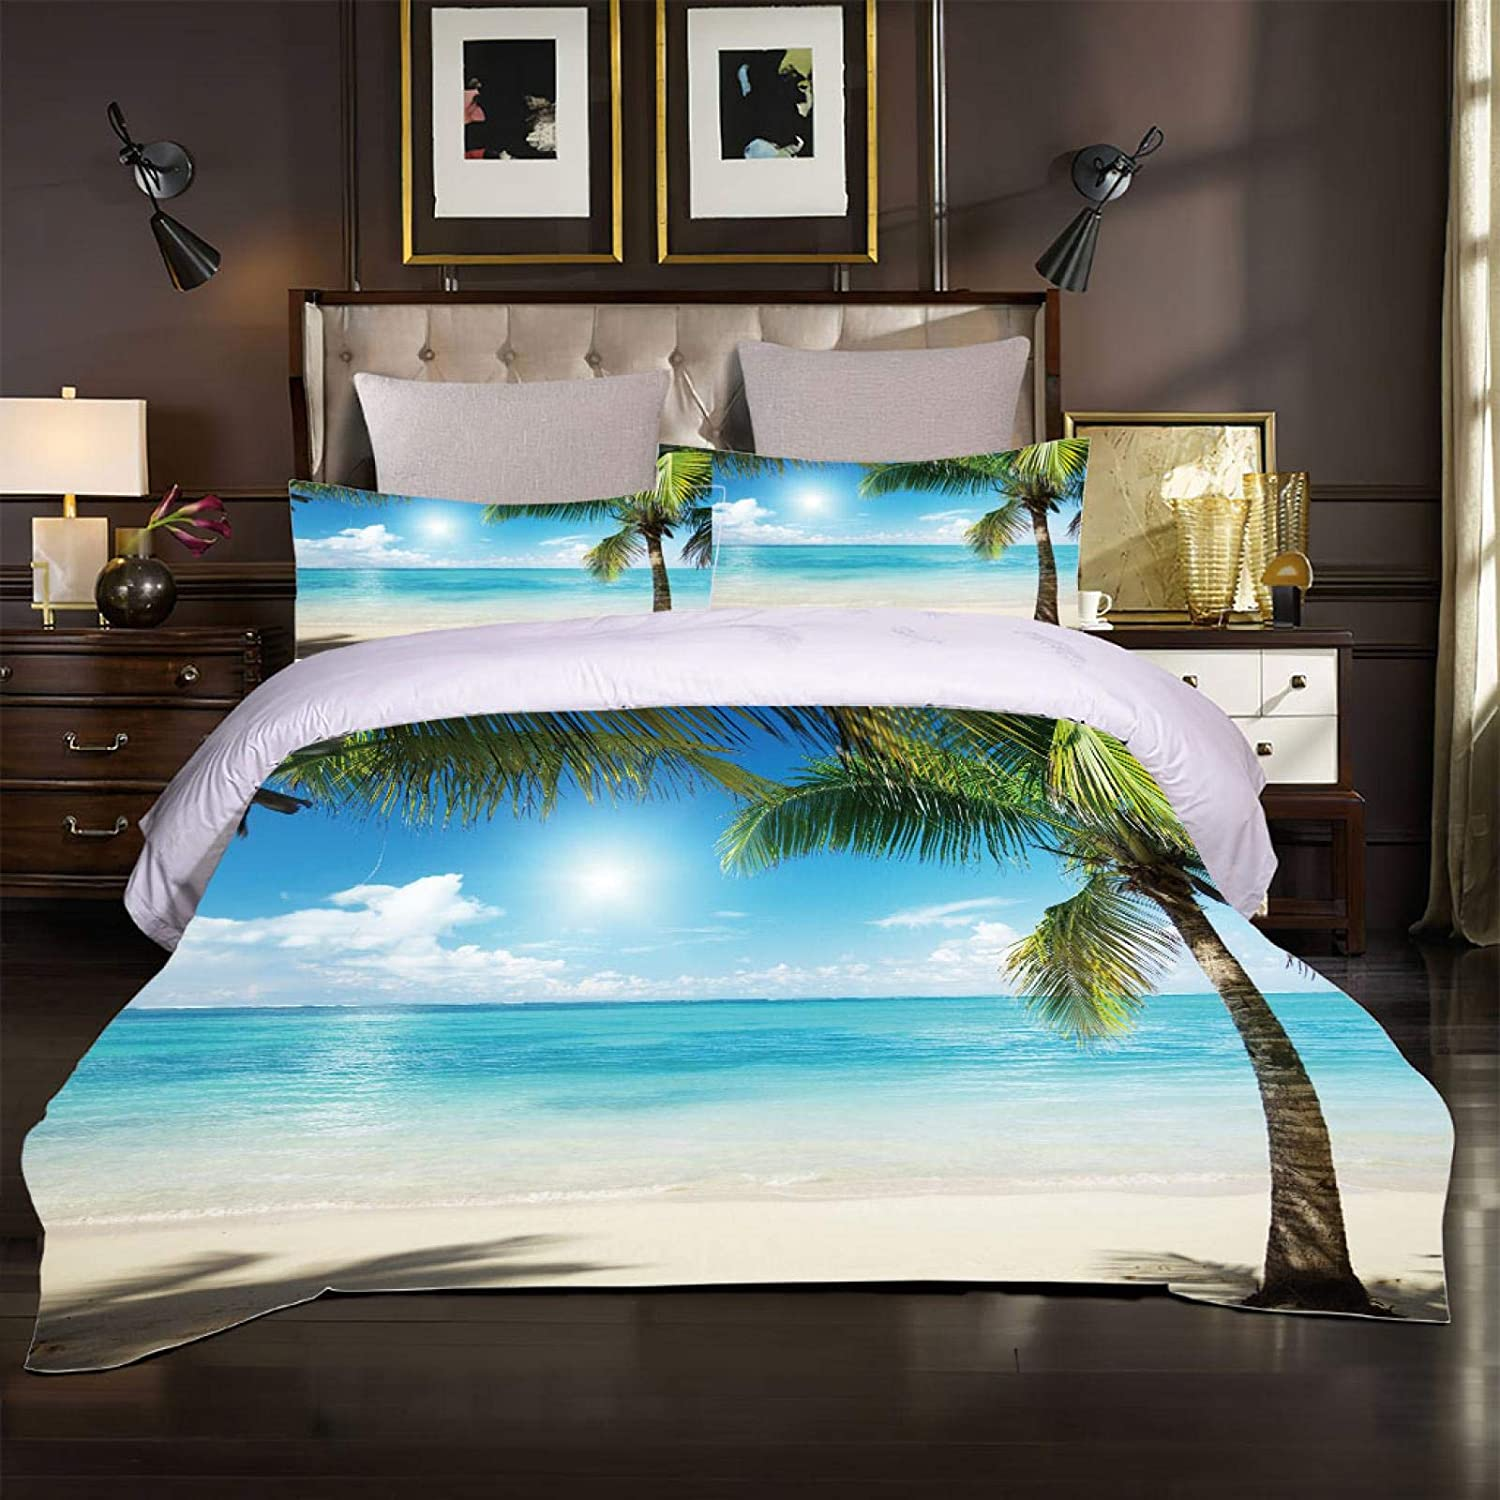 YUEKDA 3-Piece Duvet Cover Sets - 3D Max 43% OFF se Coconut Tropical Printed Opening large release sale